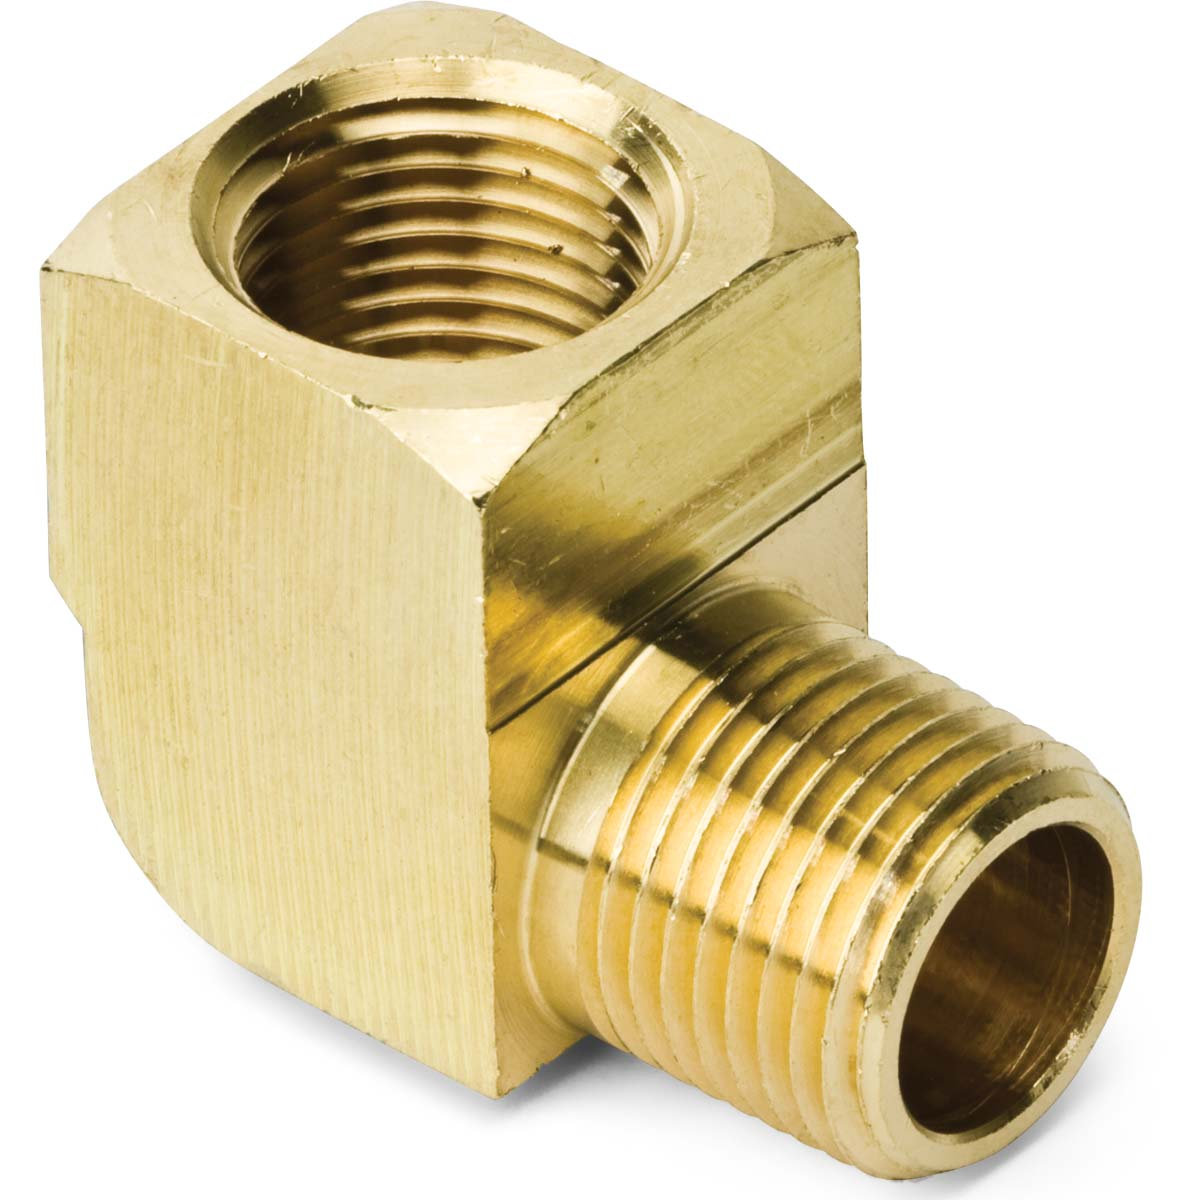 Fpt mpt lead free brass pipe ° street elbow